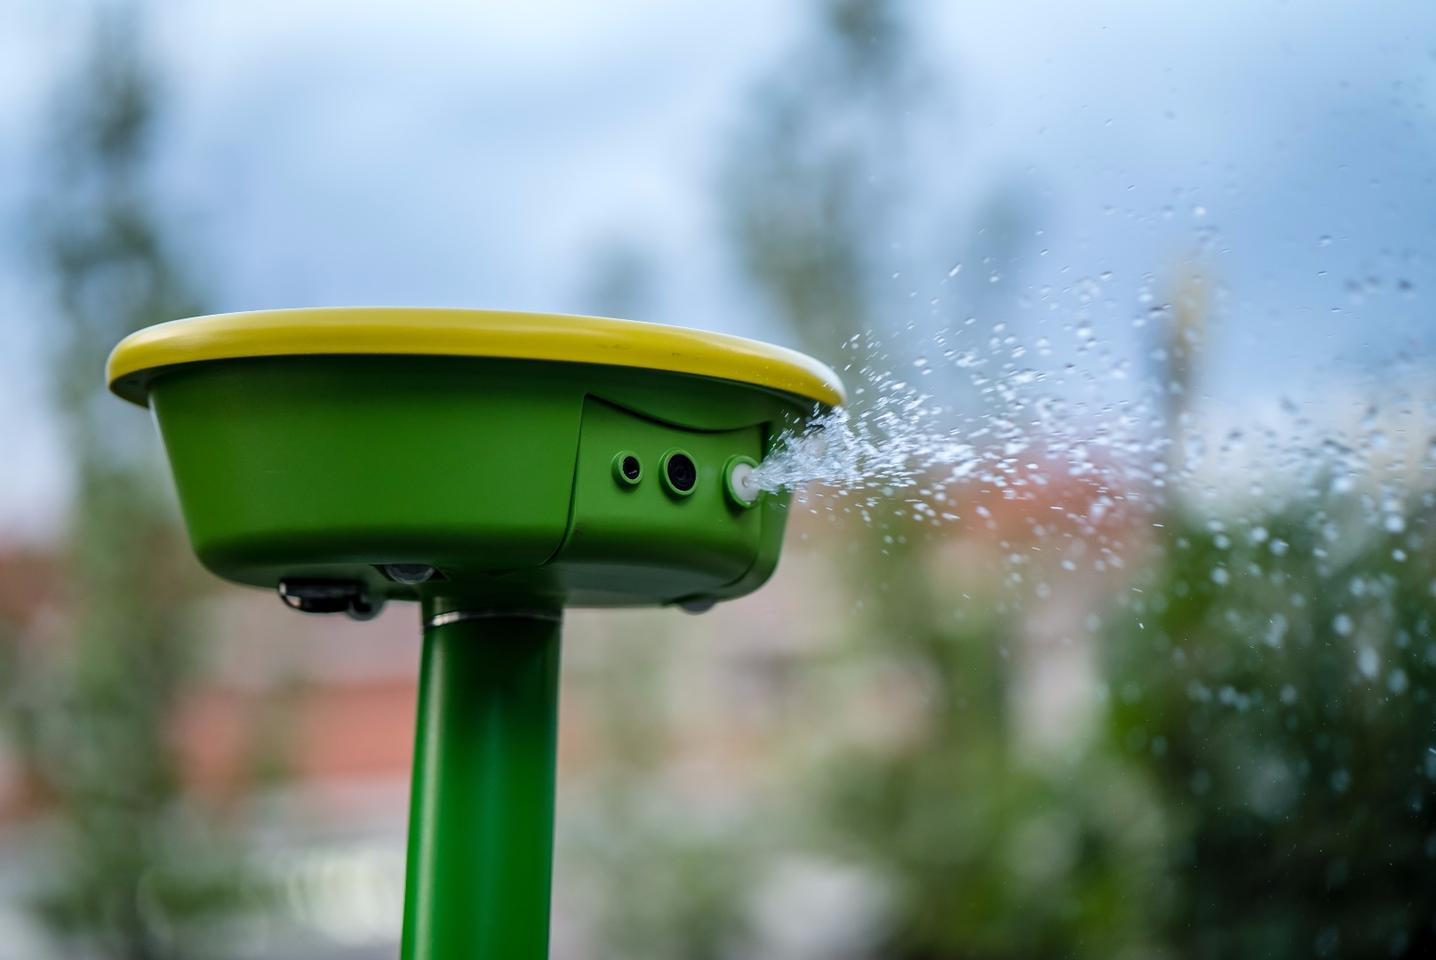 GardenSpace shoots water from a nozzle beside its 360-degree camera